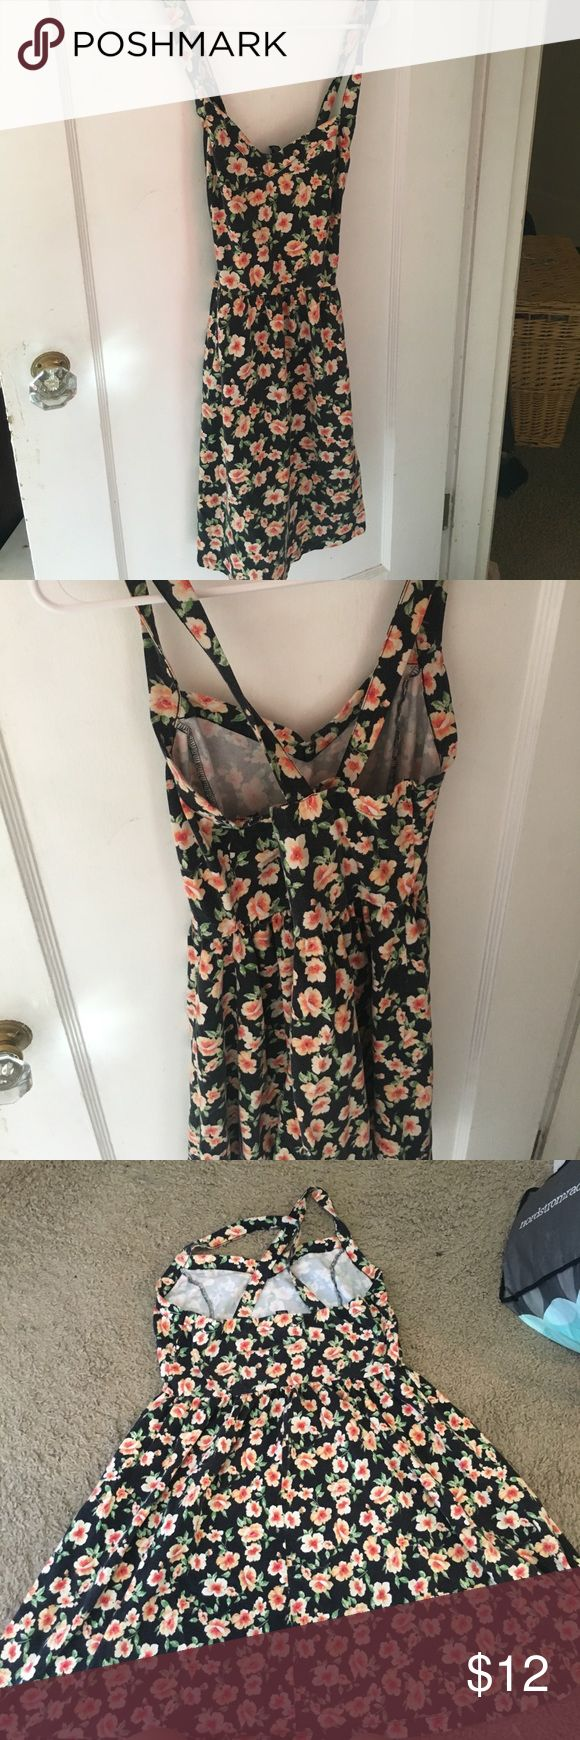 forever 21 plus size dress adorable floral printed forever 21 plus size dress! cross in the back and has thin straps. size 1X. super comfy and cute, perfect for summer! has peachy orange flowers. worn, a little fading but still in great condition :) MAKE OFFERS Forever 21 Dresses